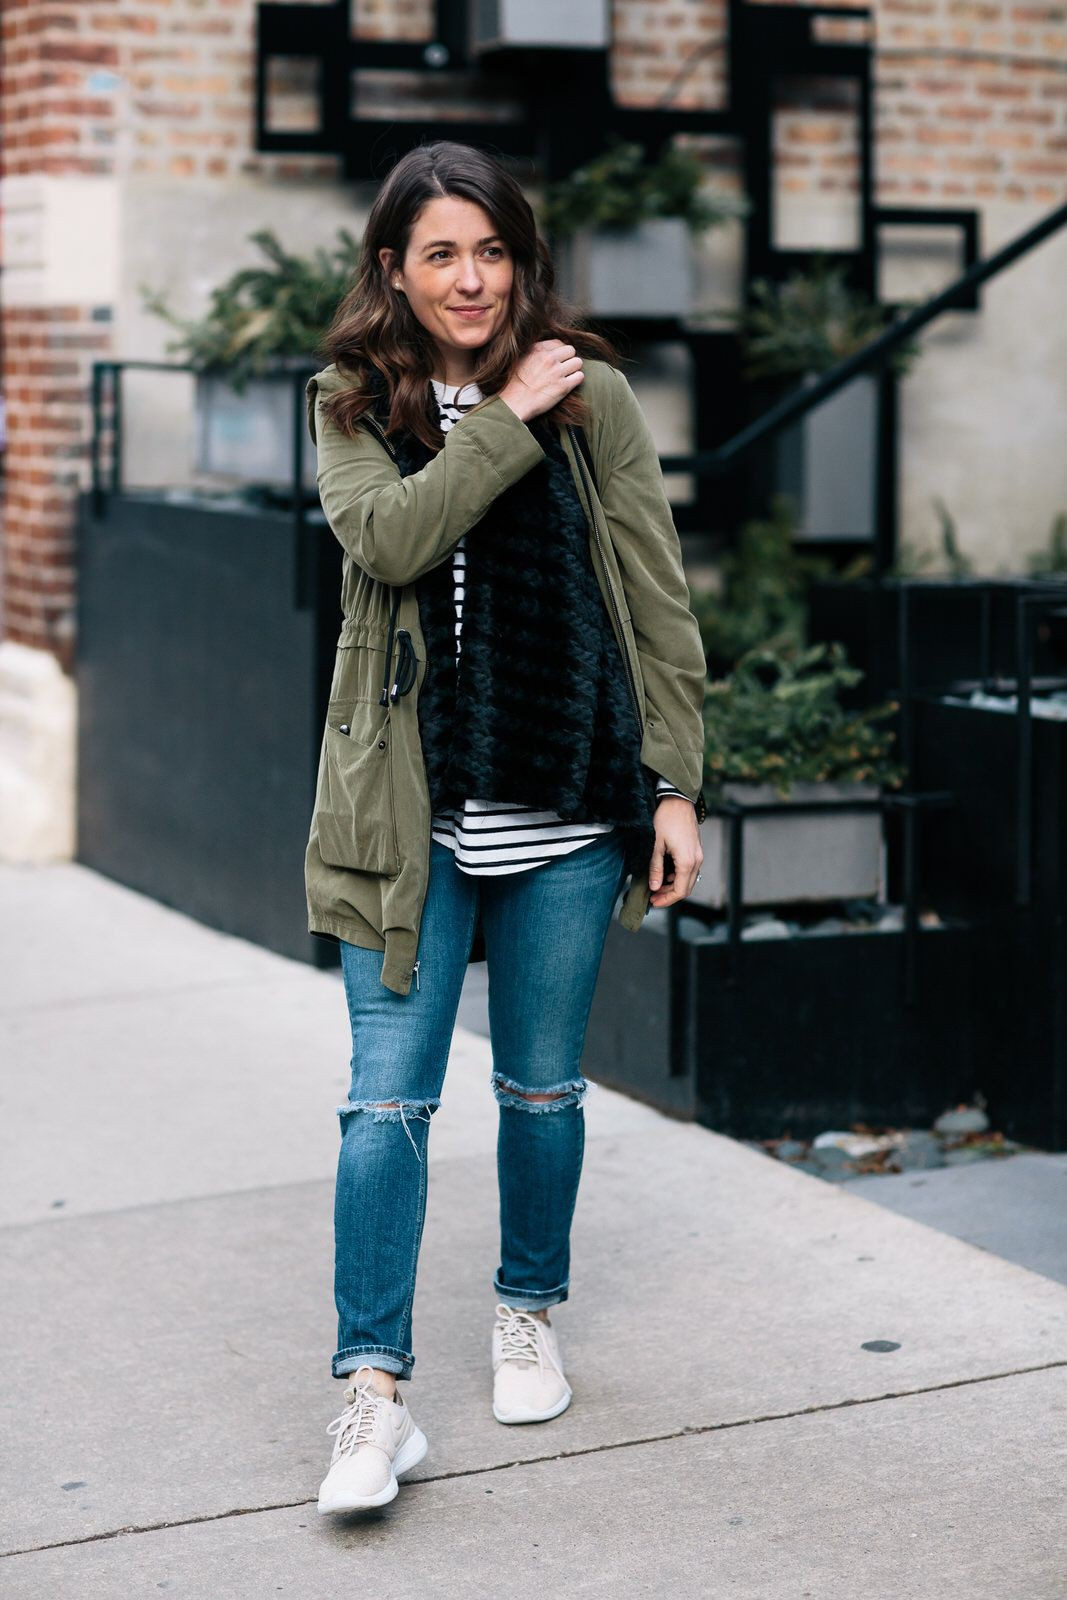 Winter Sneakers outfit For Girls